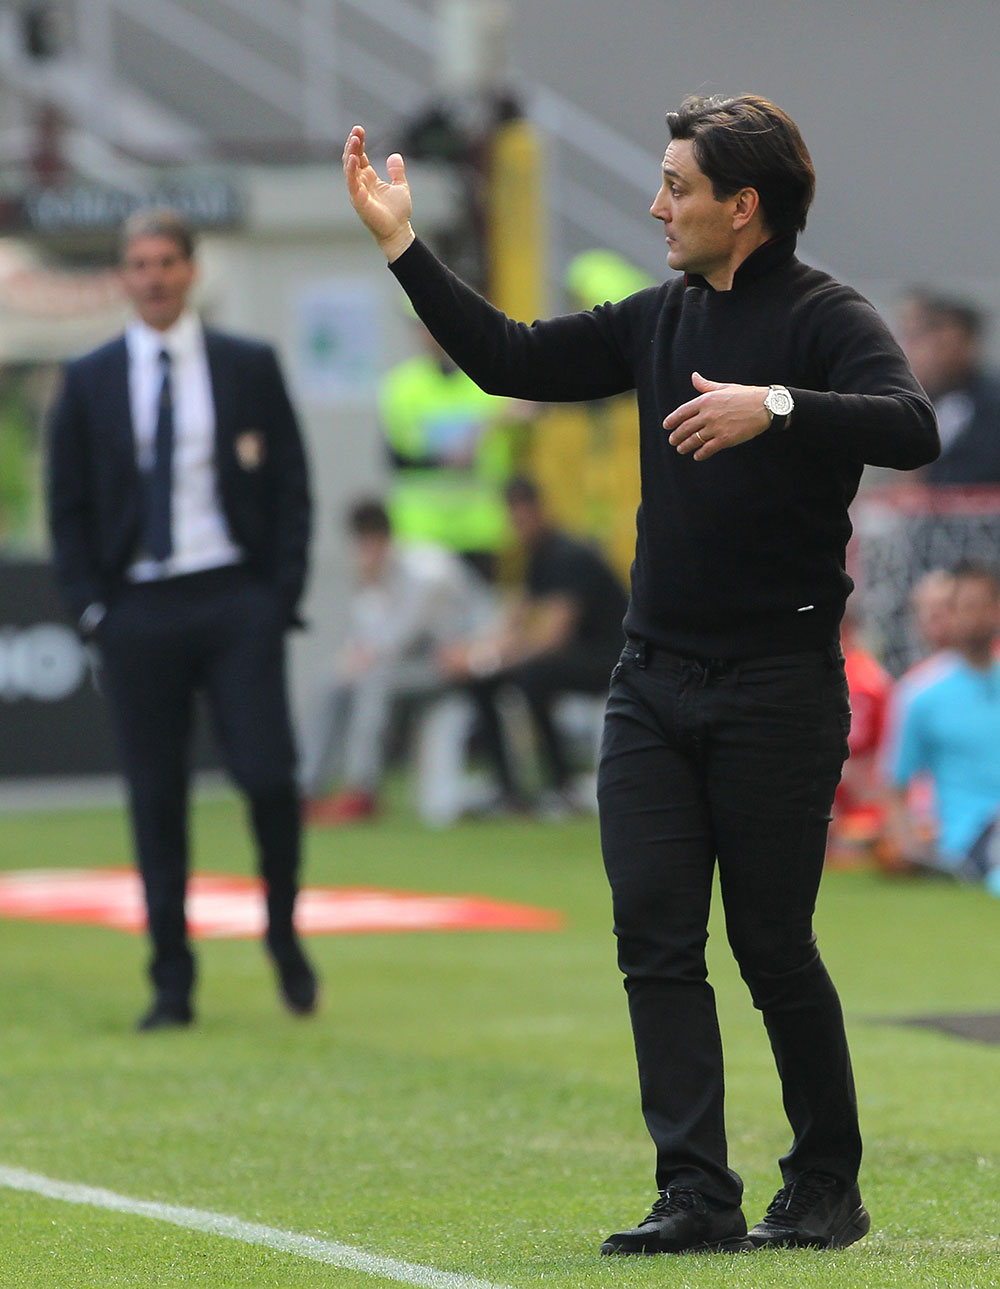 Vincenzo Montella during Milan-Palermo at Stadio San Siro on the 9th of April 2017. (Photo by Marco Luzzani/Getty Images)